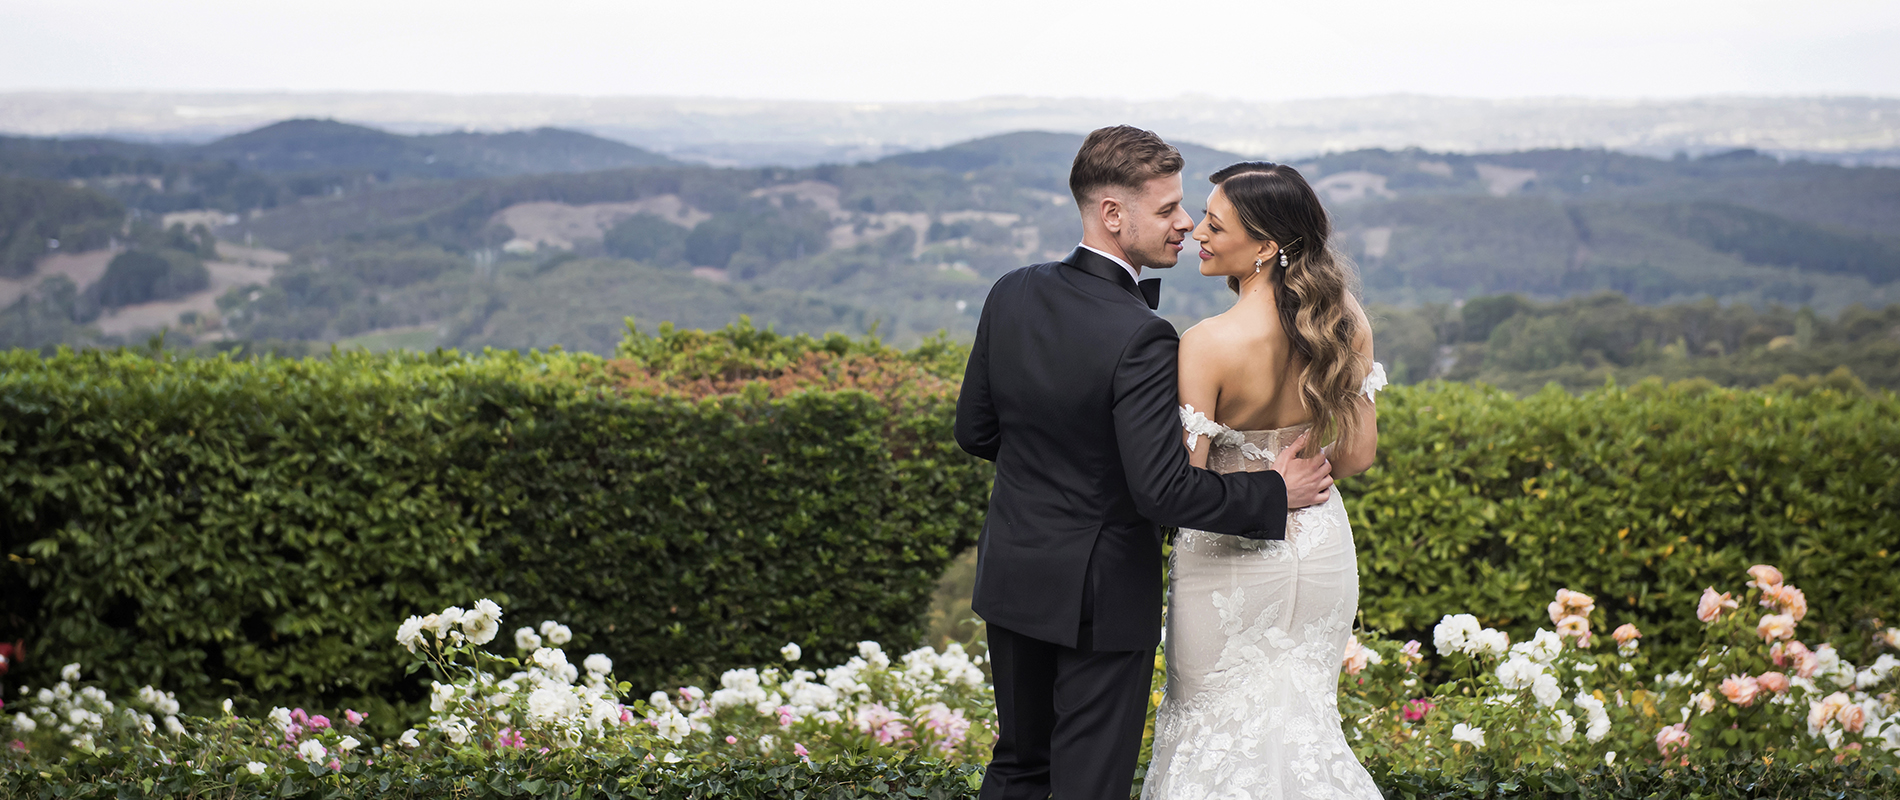 Bride and groom at mount lofty house on their wedding day